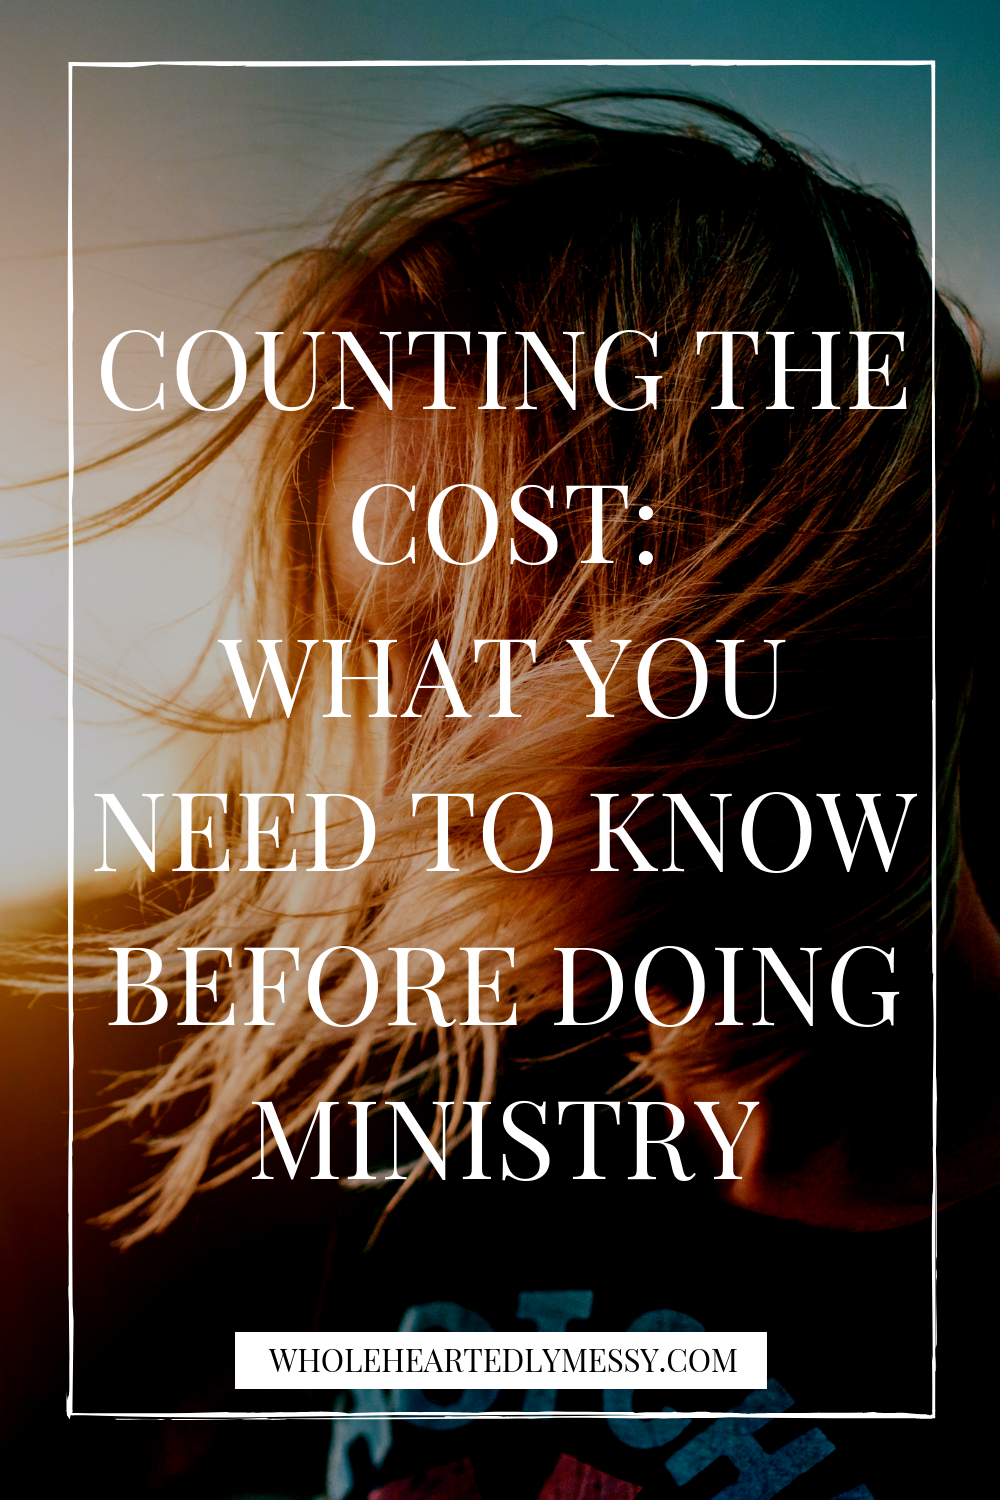 COUNTING THE COST_ WHAT YOU NEED TO KNOW BEFORE DOING MINISTRY-2.png